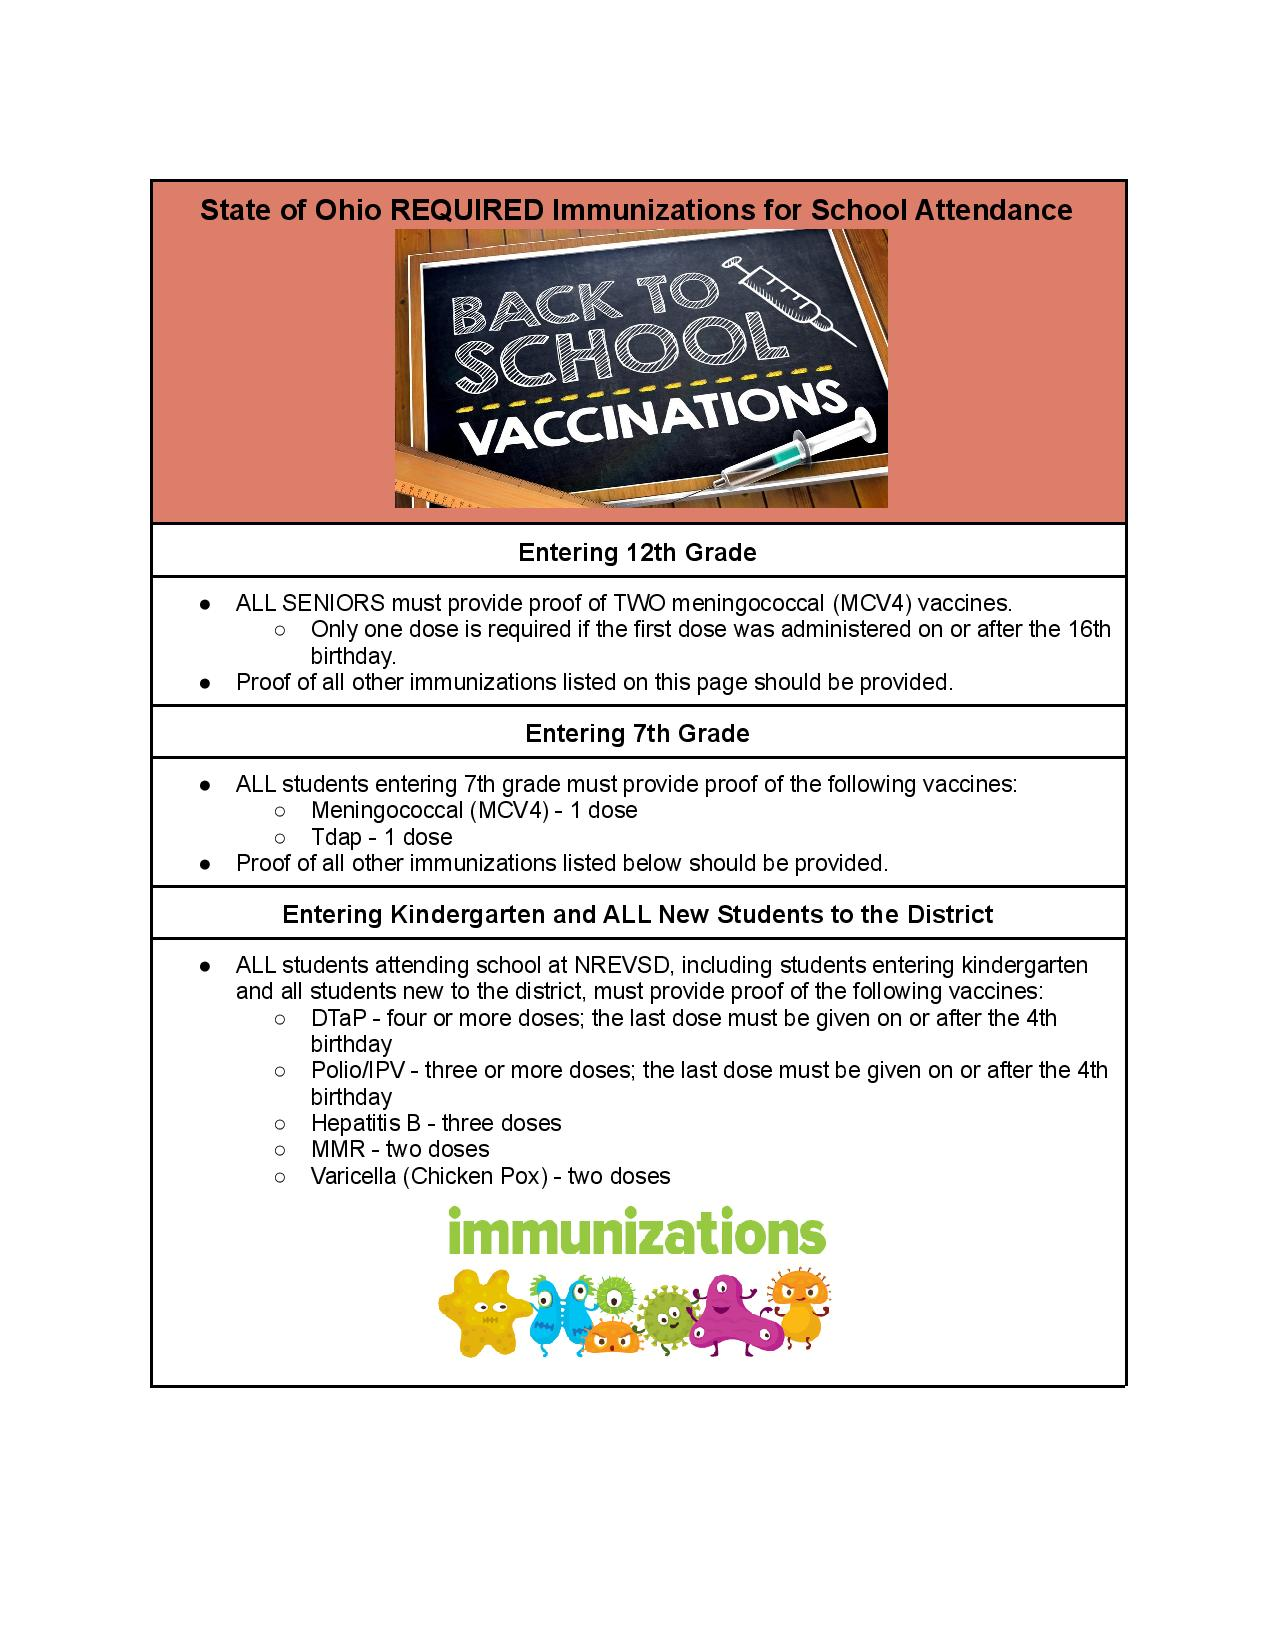 Listing of required immunizations